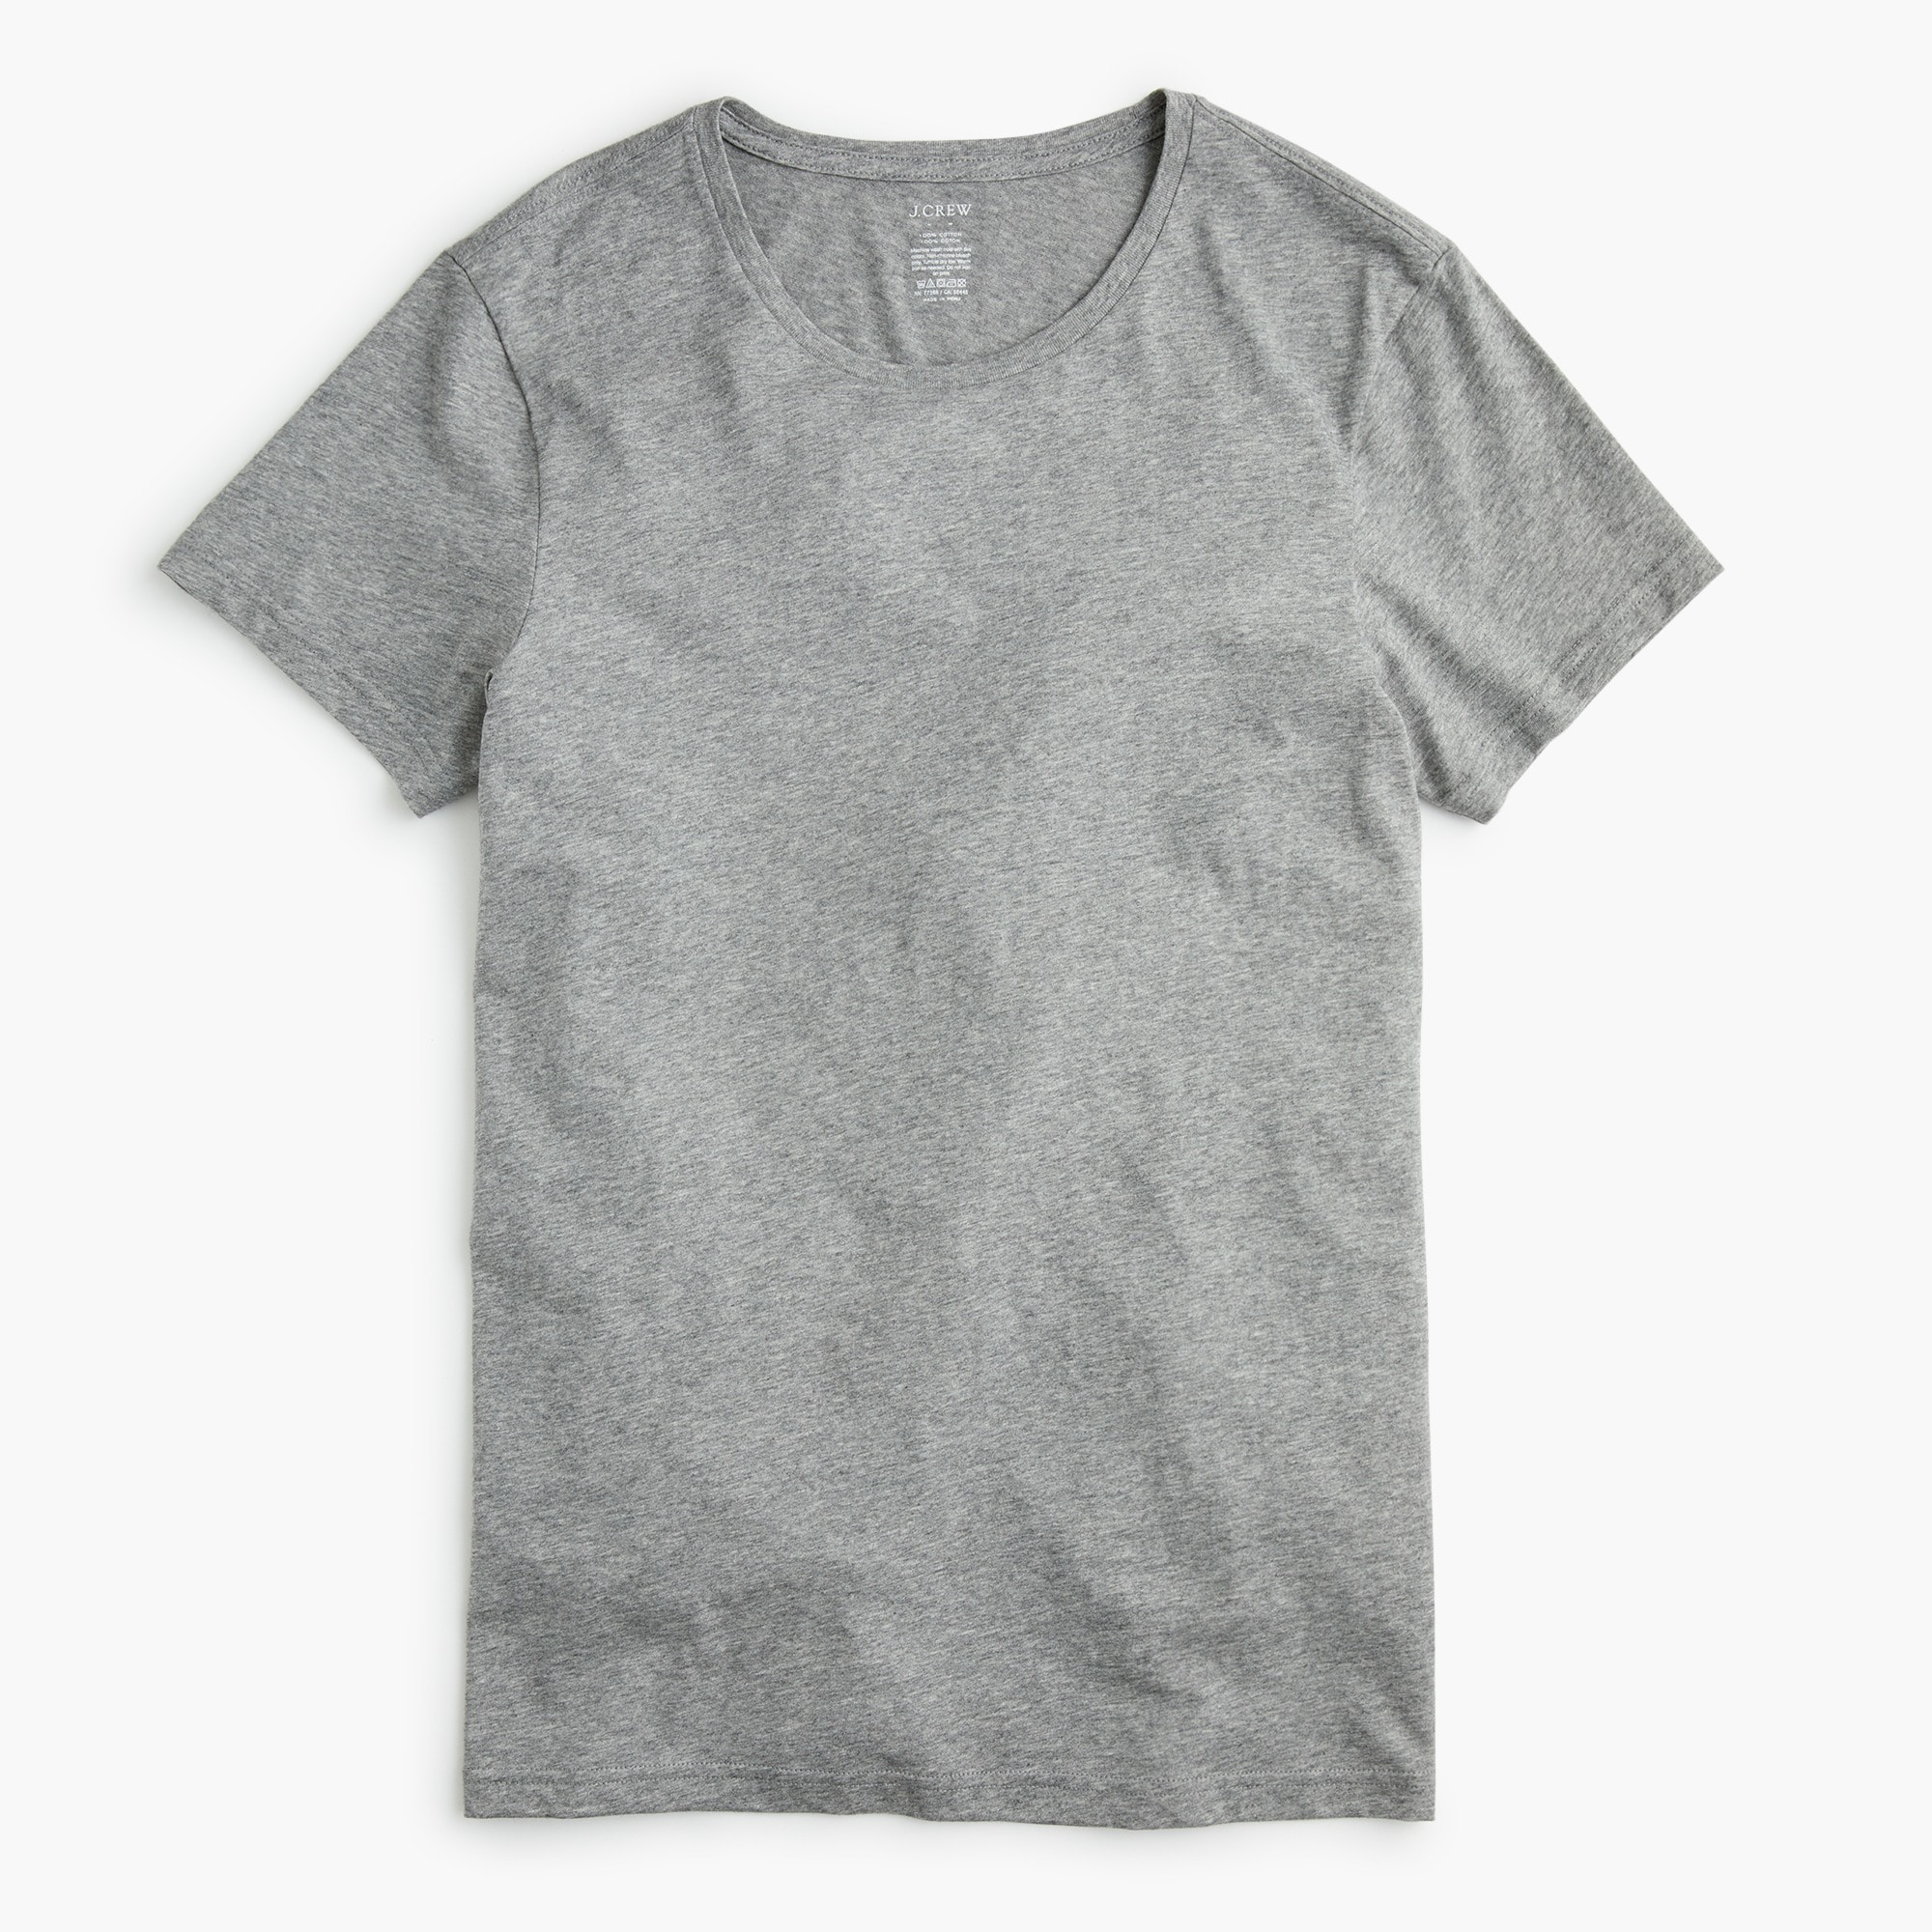 Image 1 for Heather grey crewneck undershirt